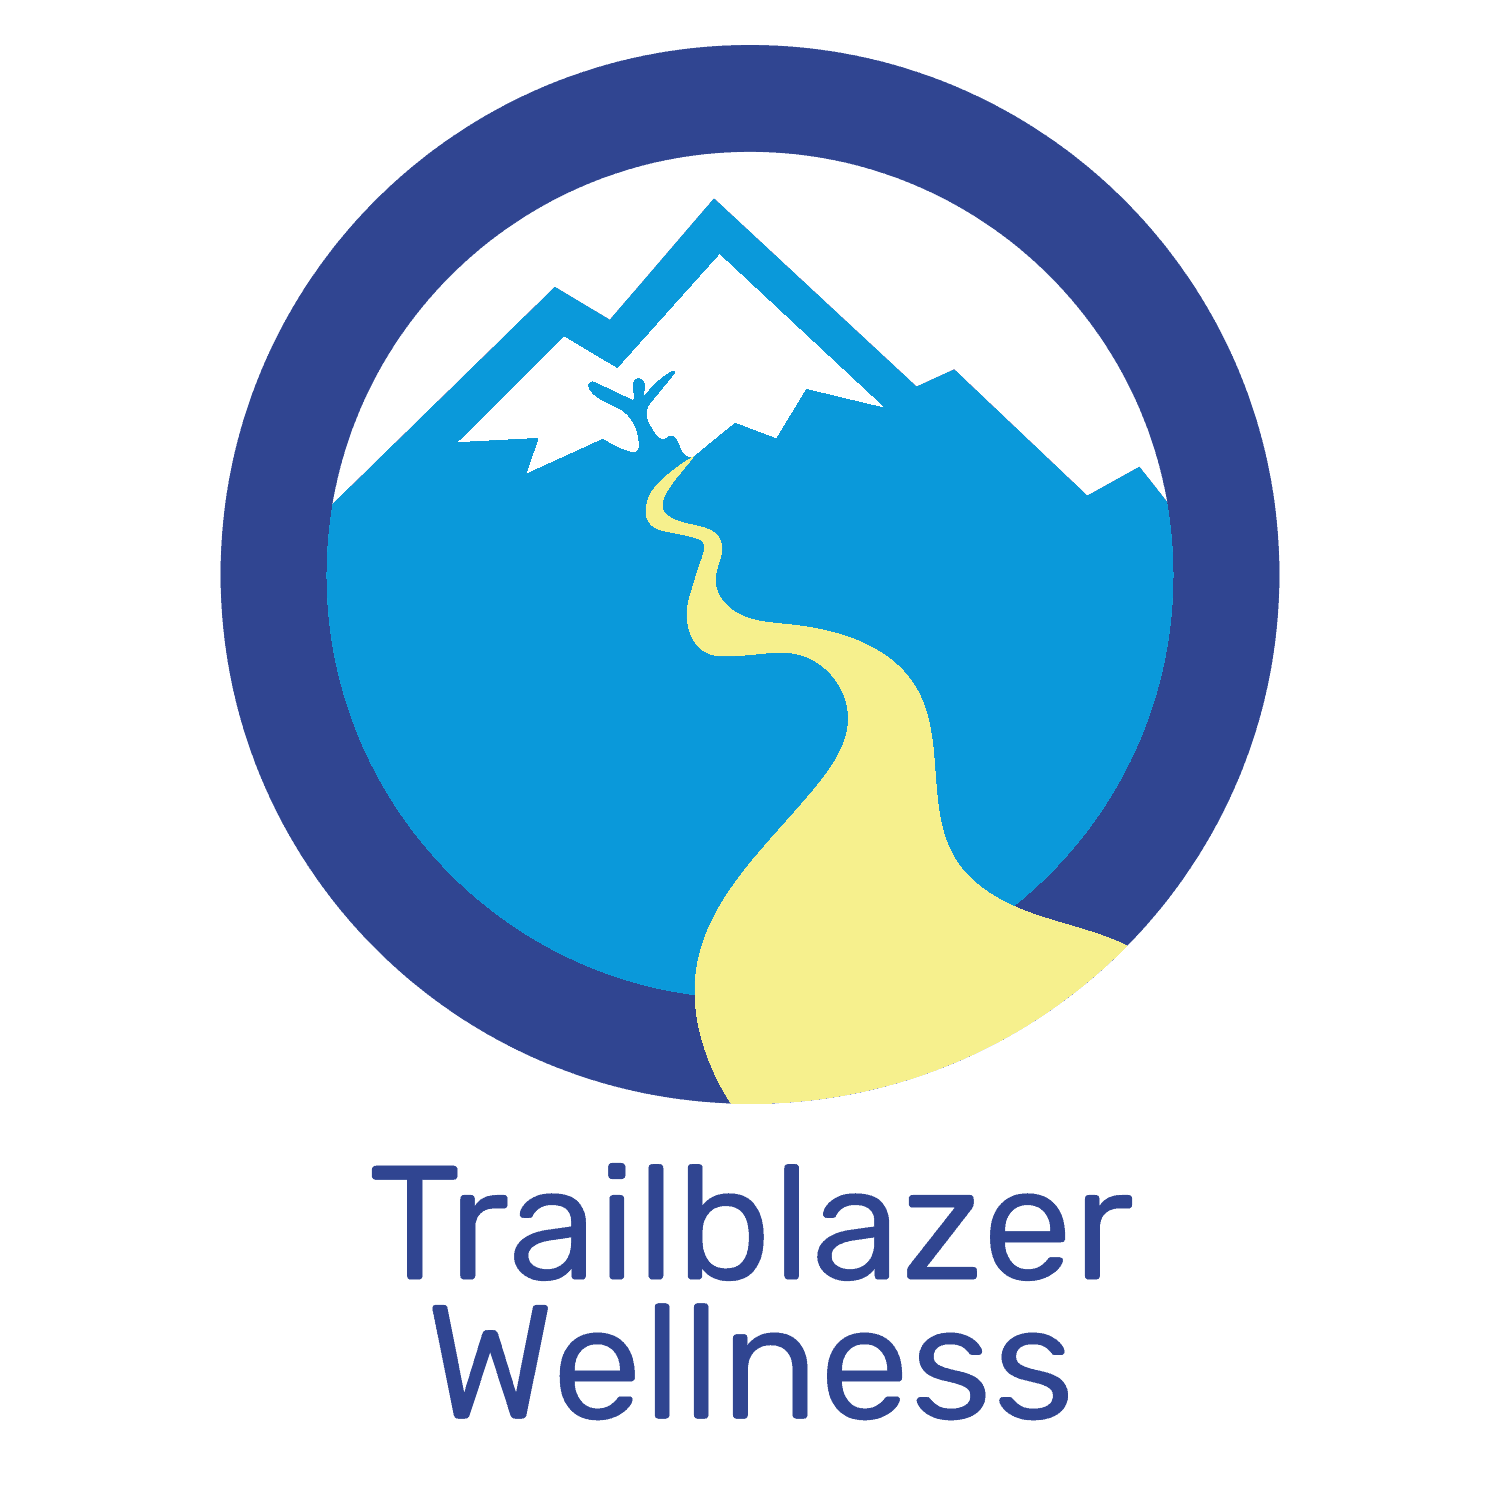 Trailblazer Wellness